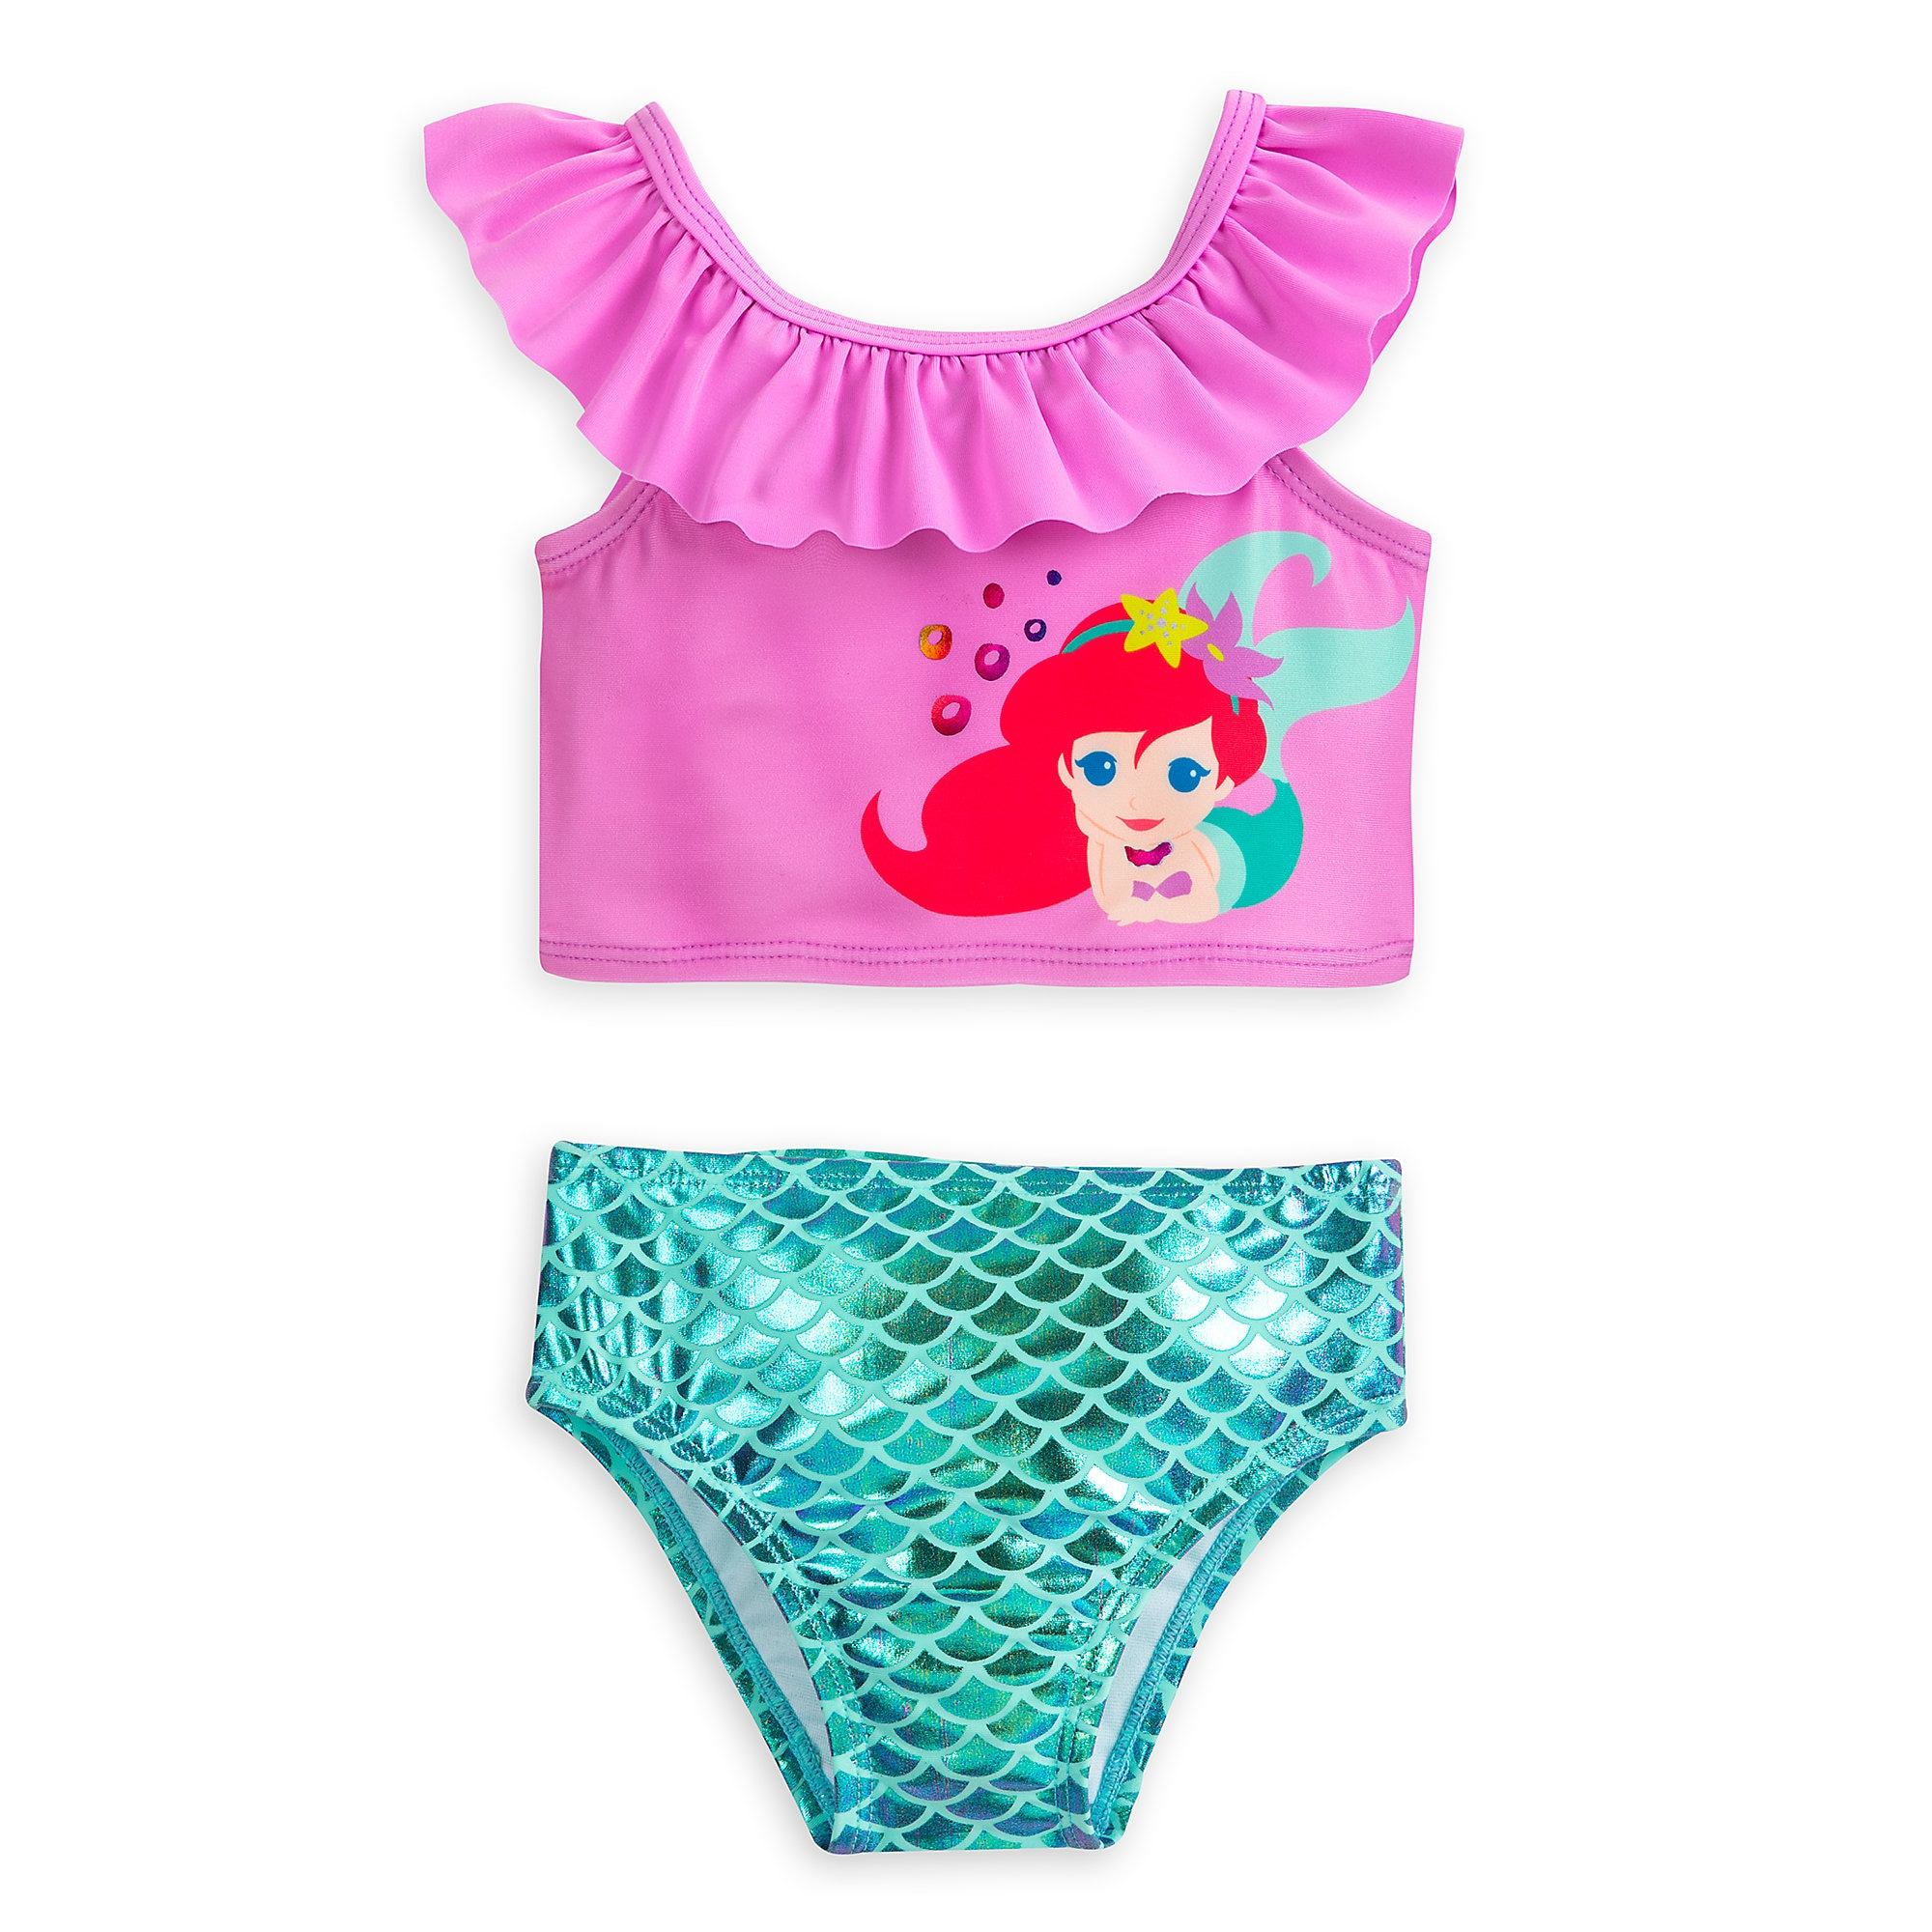 Ariel Two-Piece Swimsuit for Baby